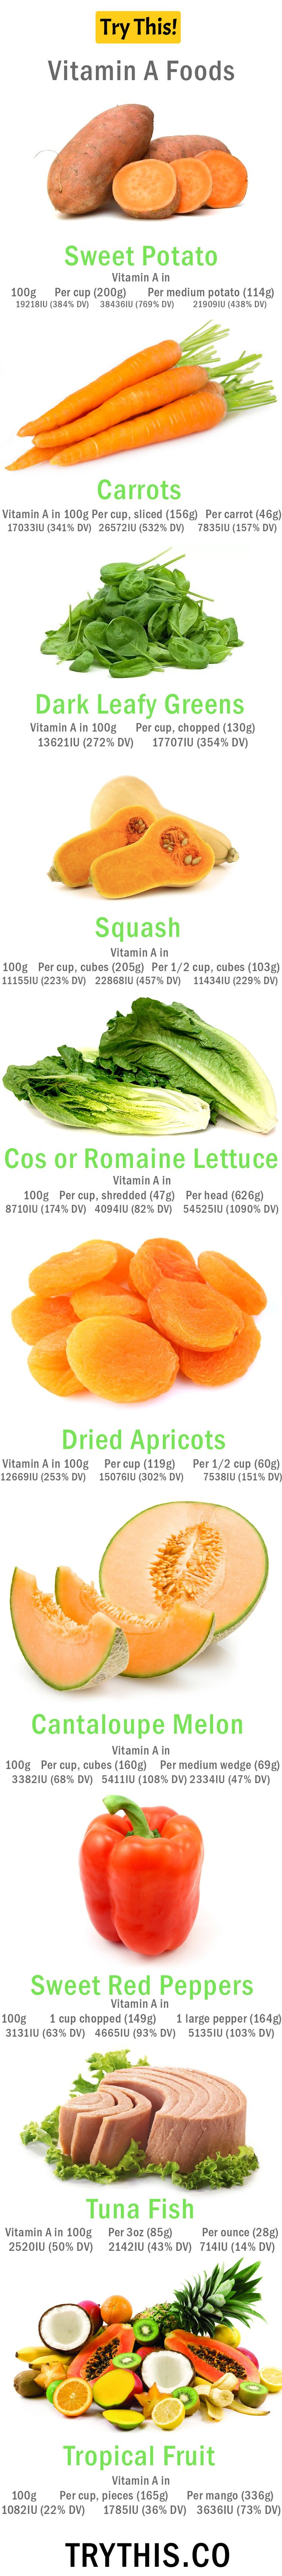 Vitamin A Foods: Top Foods Highest in Vitamin A